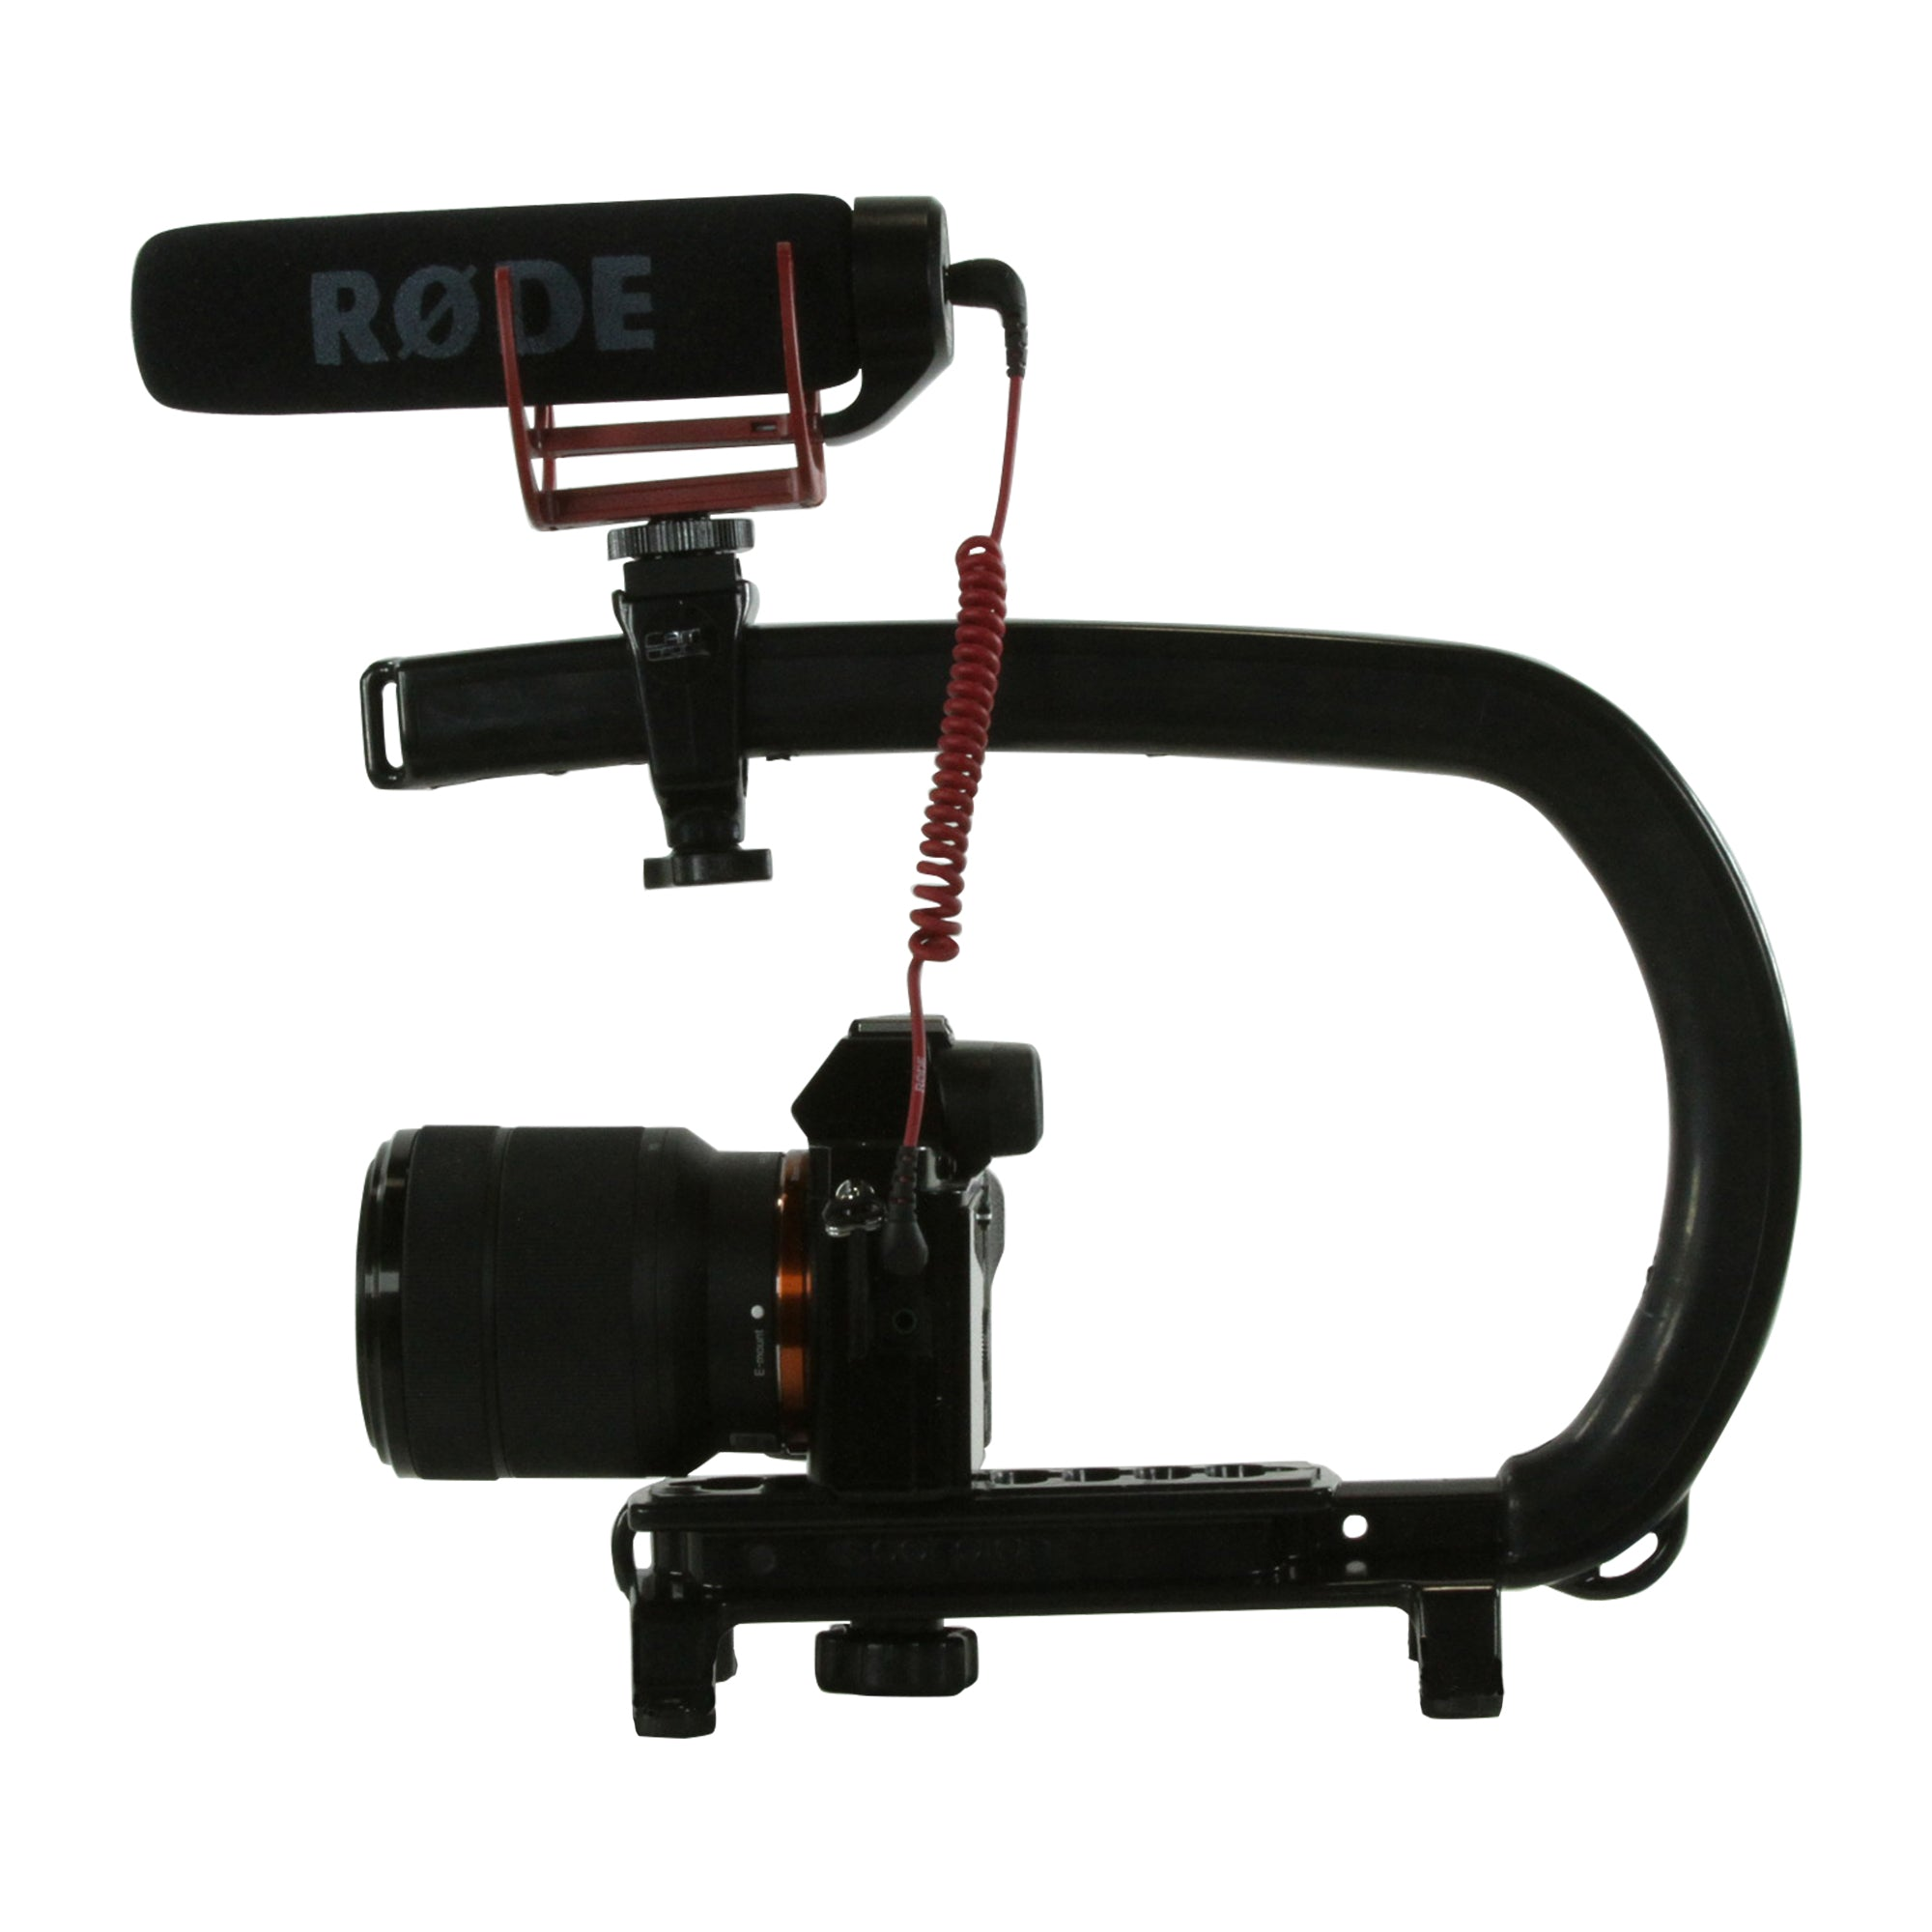 Cam Caddie Scorpion Skate Edition - Cam Caddie - The Original Universal Stabilizing Camera Handle